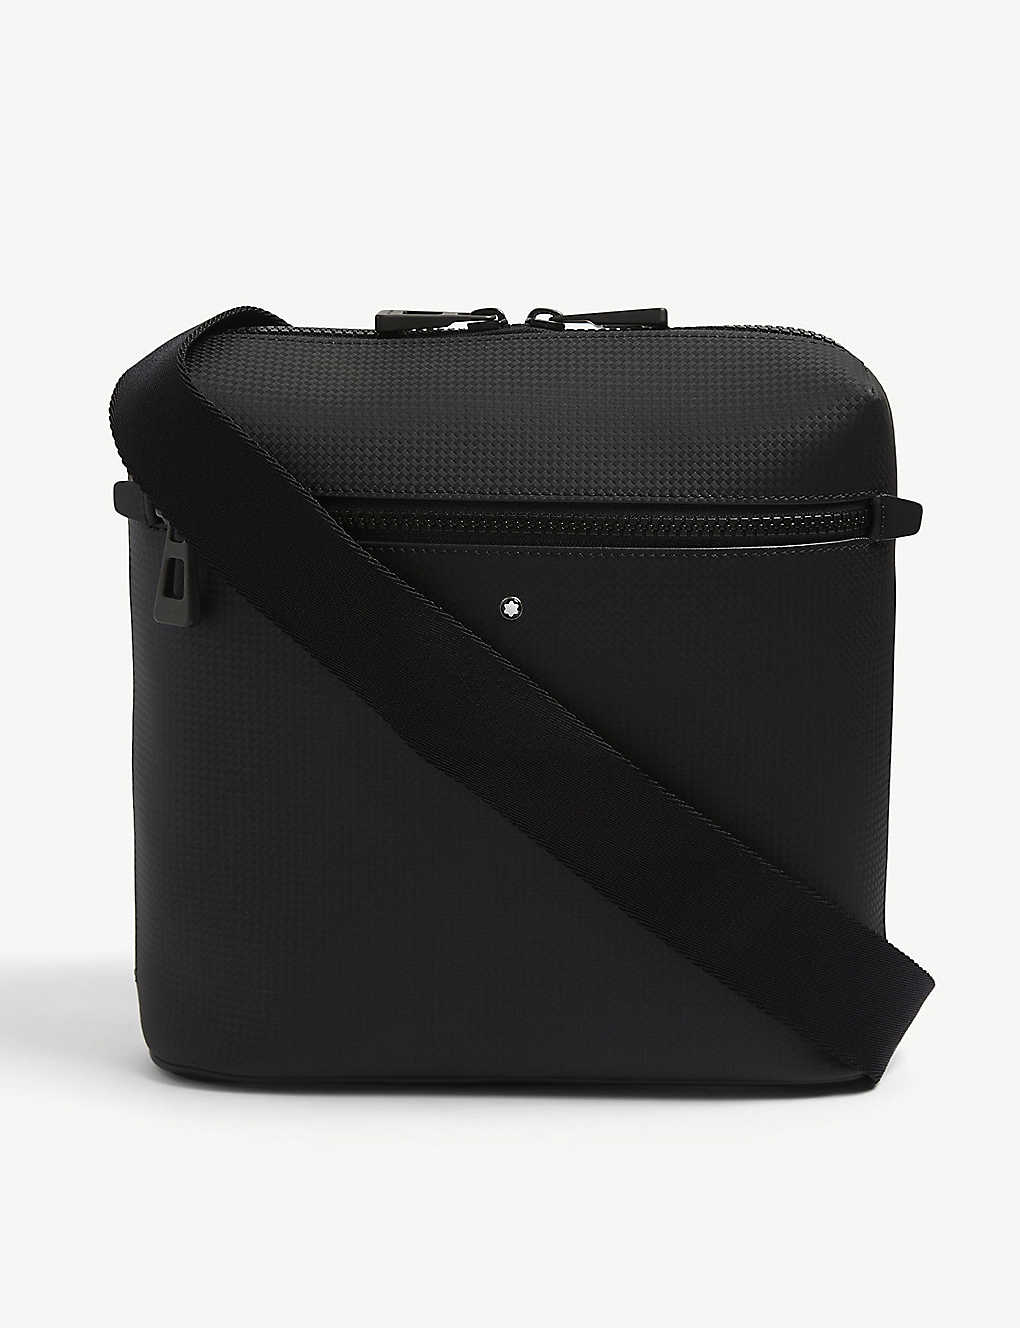 MONTBLANC: Extreme 2.0 leather messenger bag